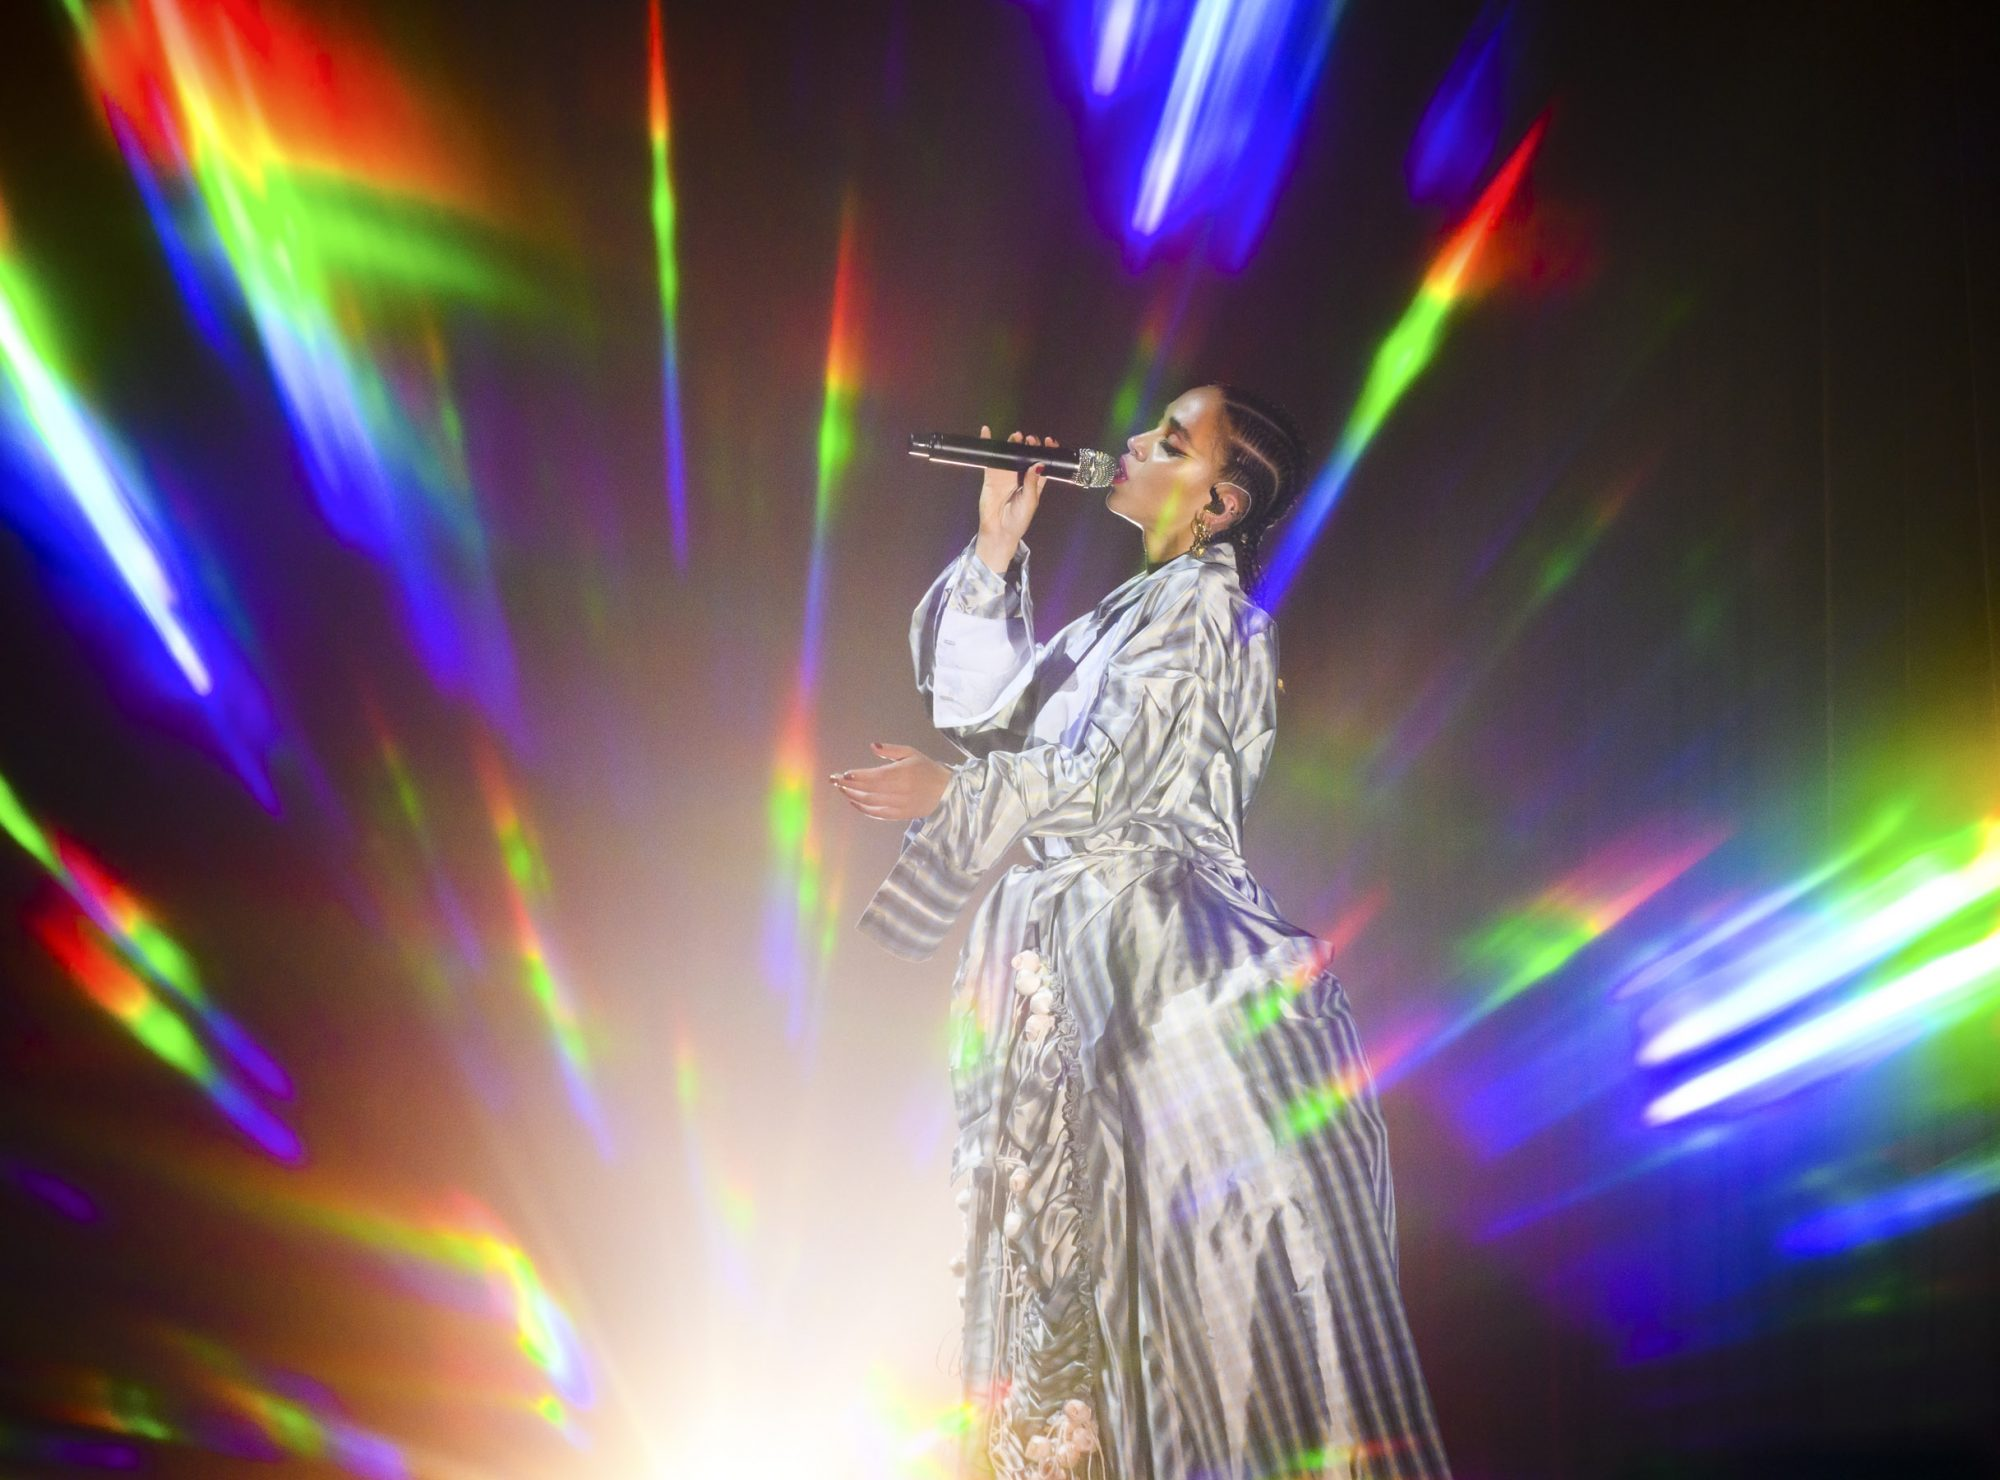 NEW YORK, NEW YORK - MAY 12: FKA twigs performs in concert at Park Avenue Armory on May 12, 2019 in New York City. (Photo by Noam Galai/Getty Images)